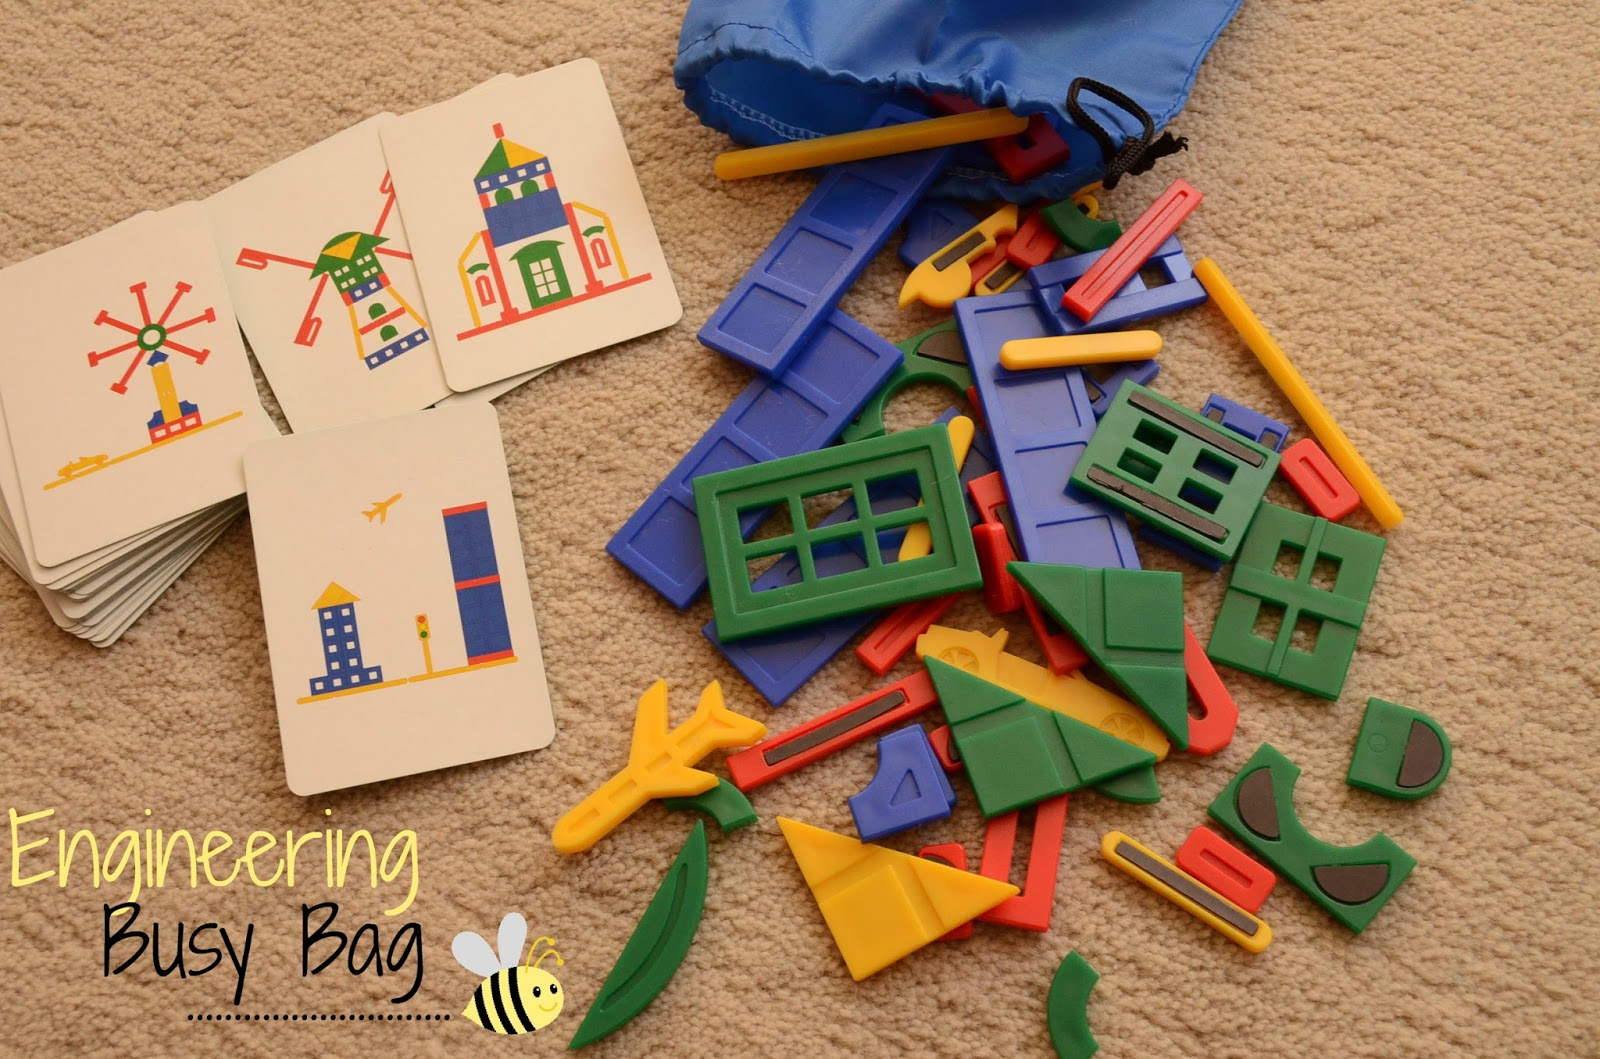 The Practical Mom: Our Engineering Busy Bag: Magnetic Building Edition Play Board  (Practical Mondays #23)